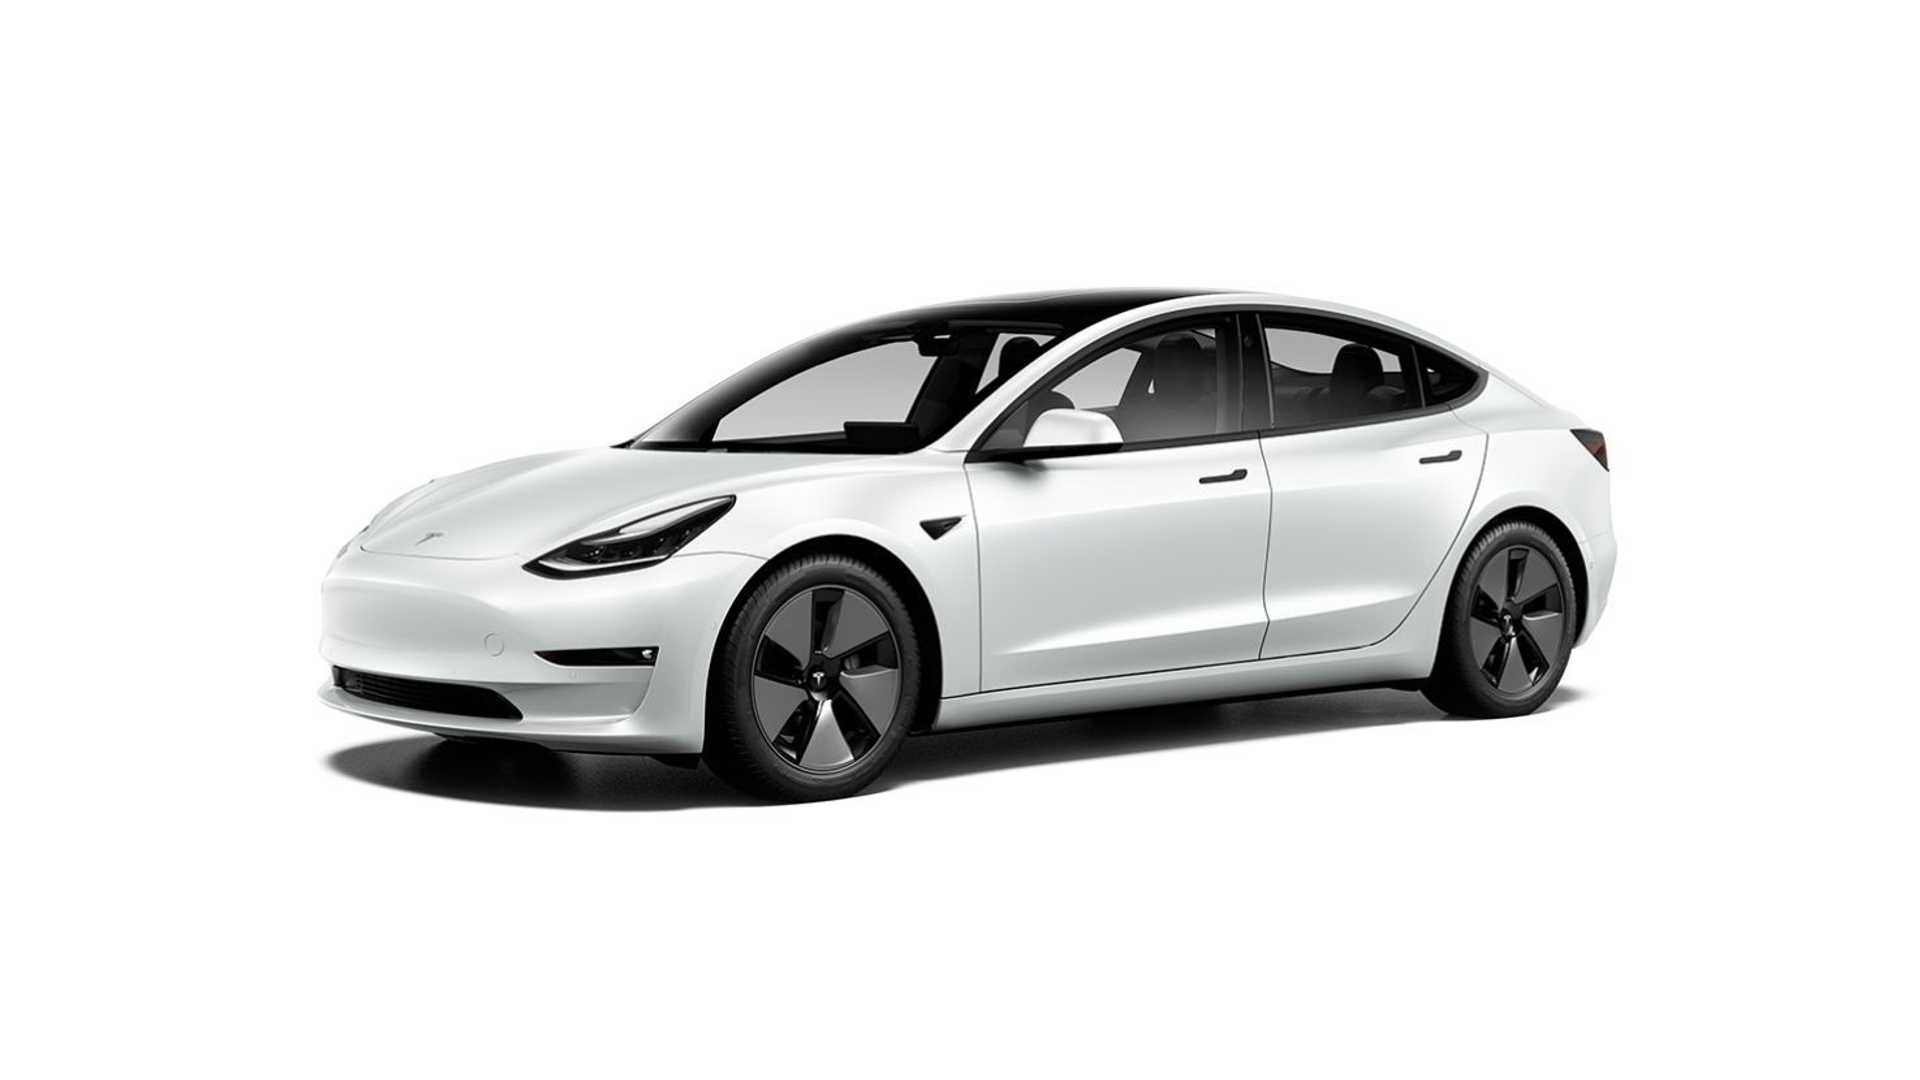 Tesla Model 3 18'' Aero Wheels (design studio U.S. - October 2020)